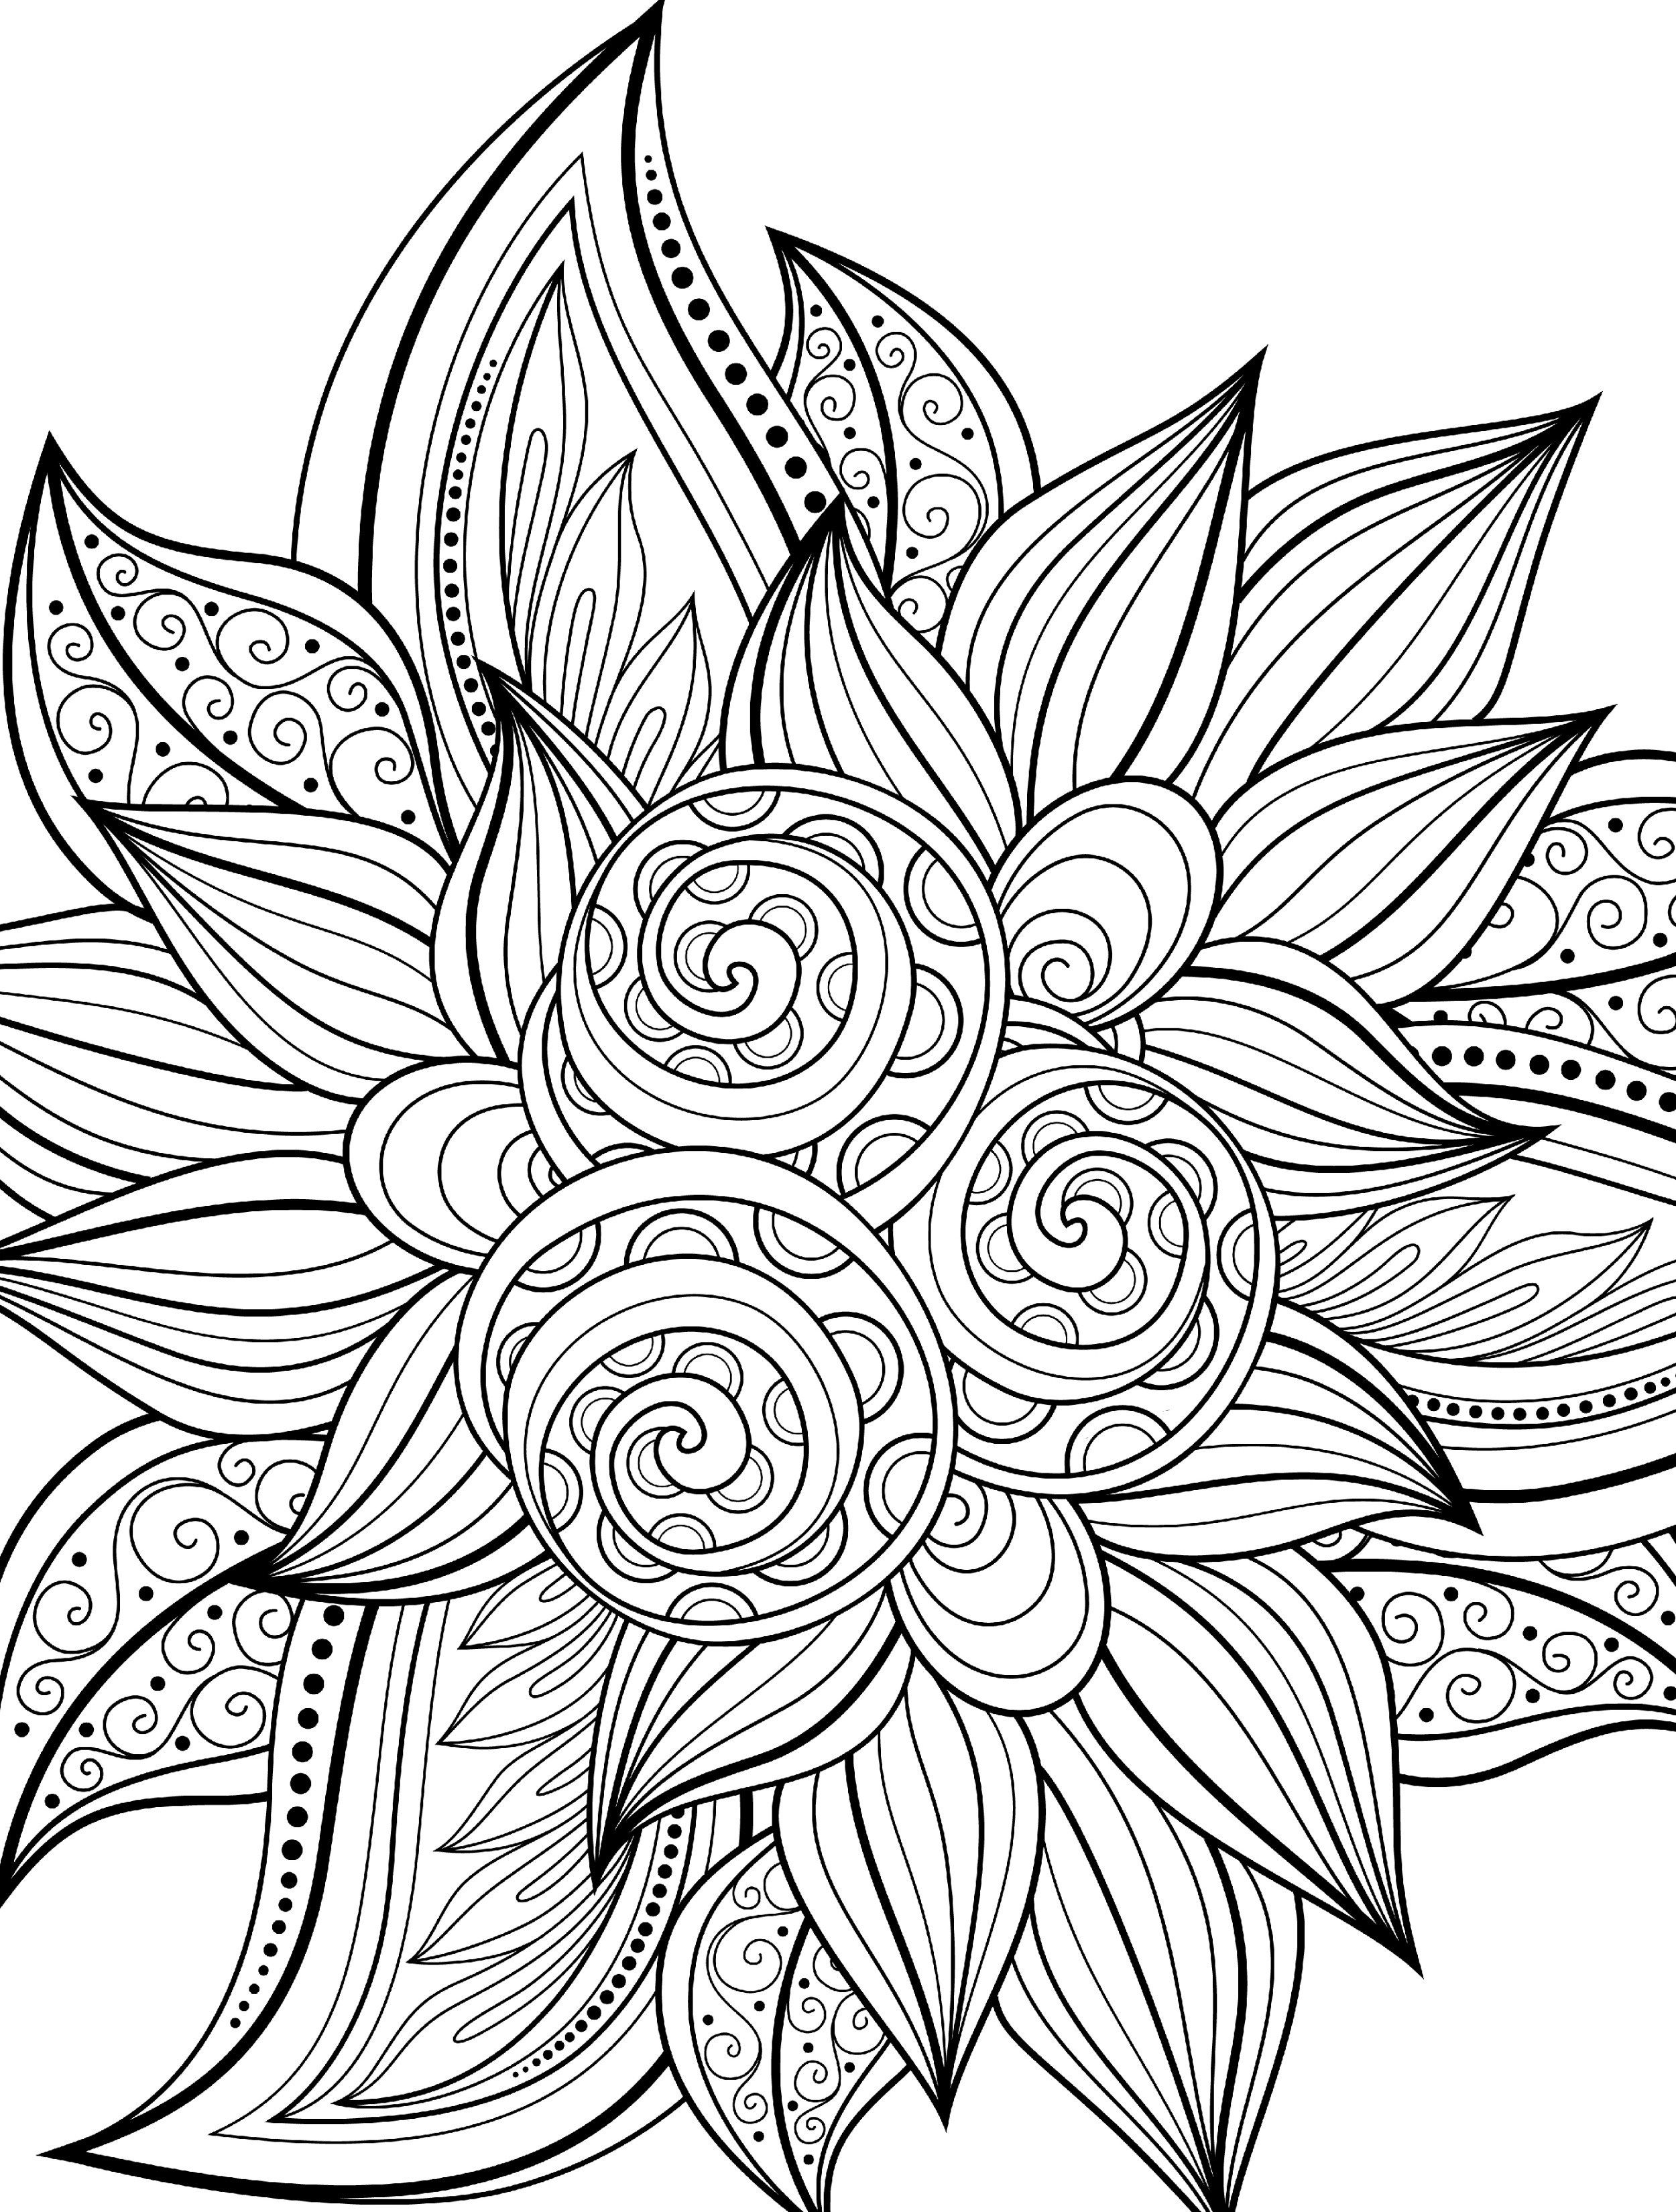 10 Free Printable Holiday Adult Coloring Pages | Best Adult ...